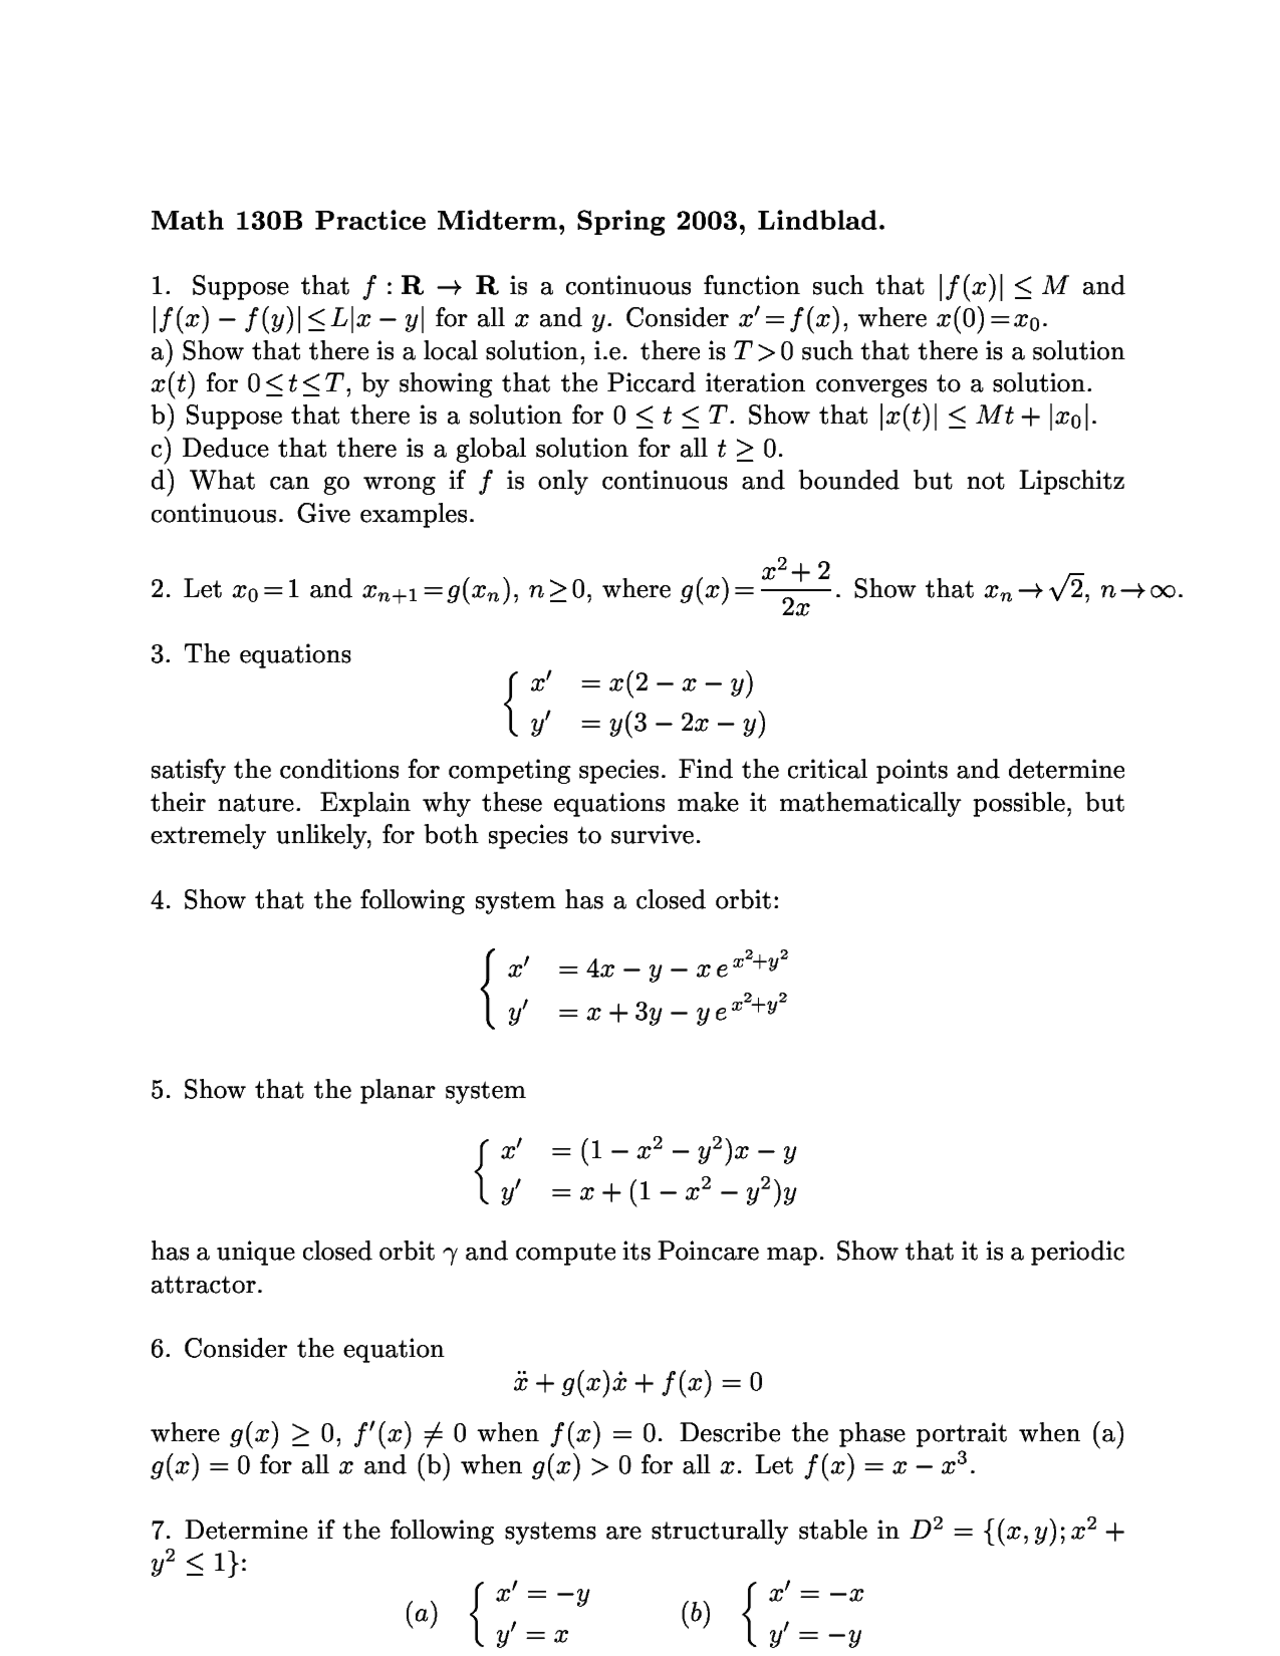 Solutions To Practice Midterm On Ordinary Differential Equation Ii Math 130b Docsity